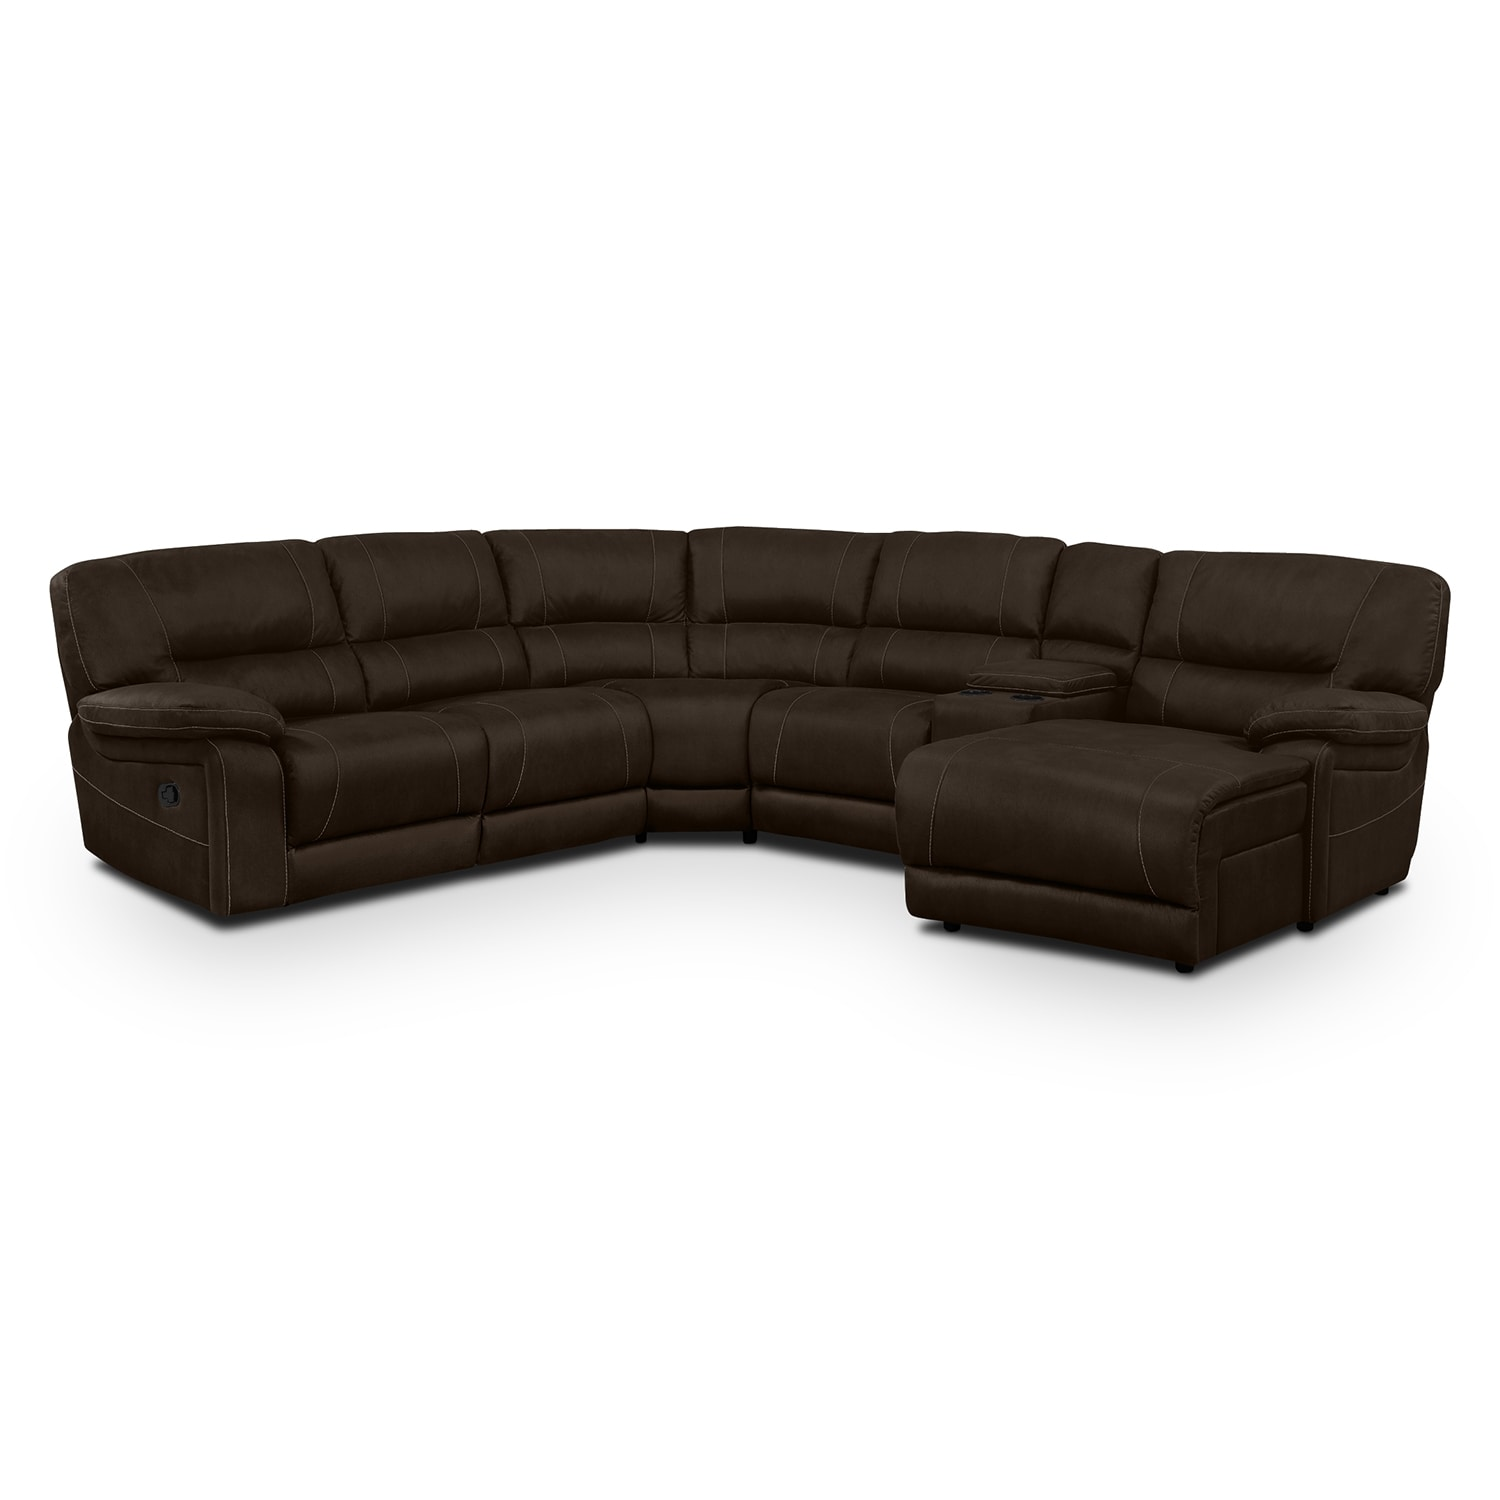 Wyoming 5-Piece Reclining Sectional with Right-Facing Chaise - Saddle Brown